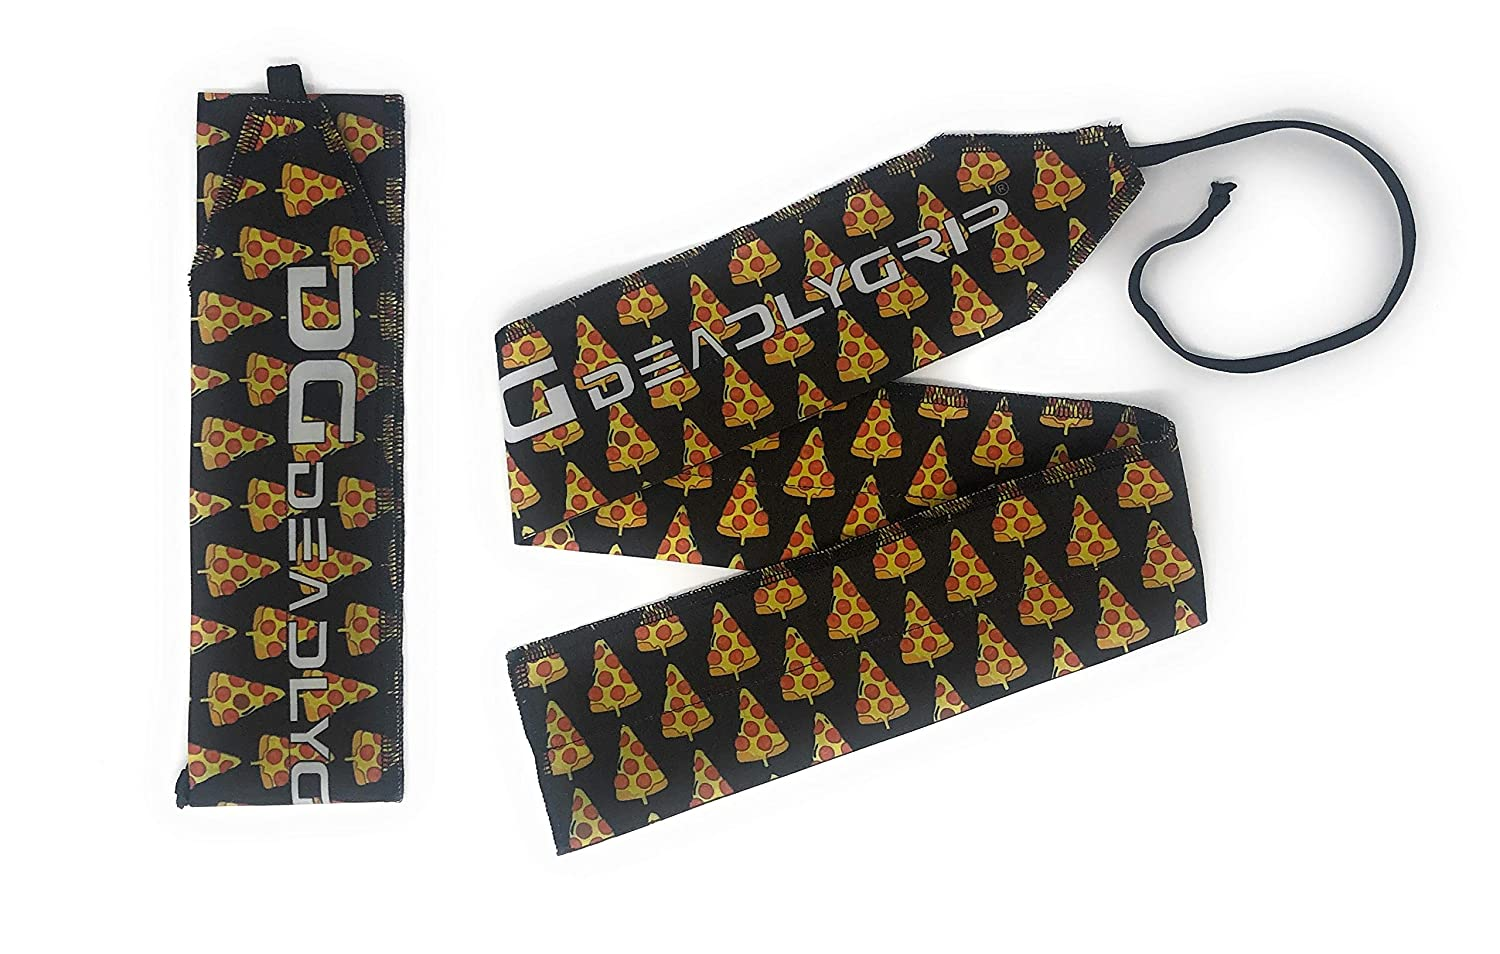 Pizza Deadly Grip DG Wrist Wrap. for Maximum Wrist Support Special for Crossfit, Power Lifting, Calisthenics and More.